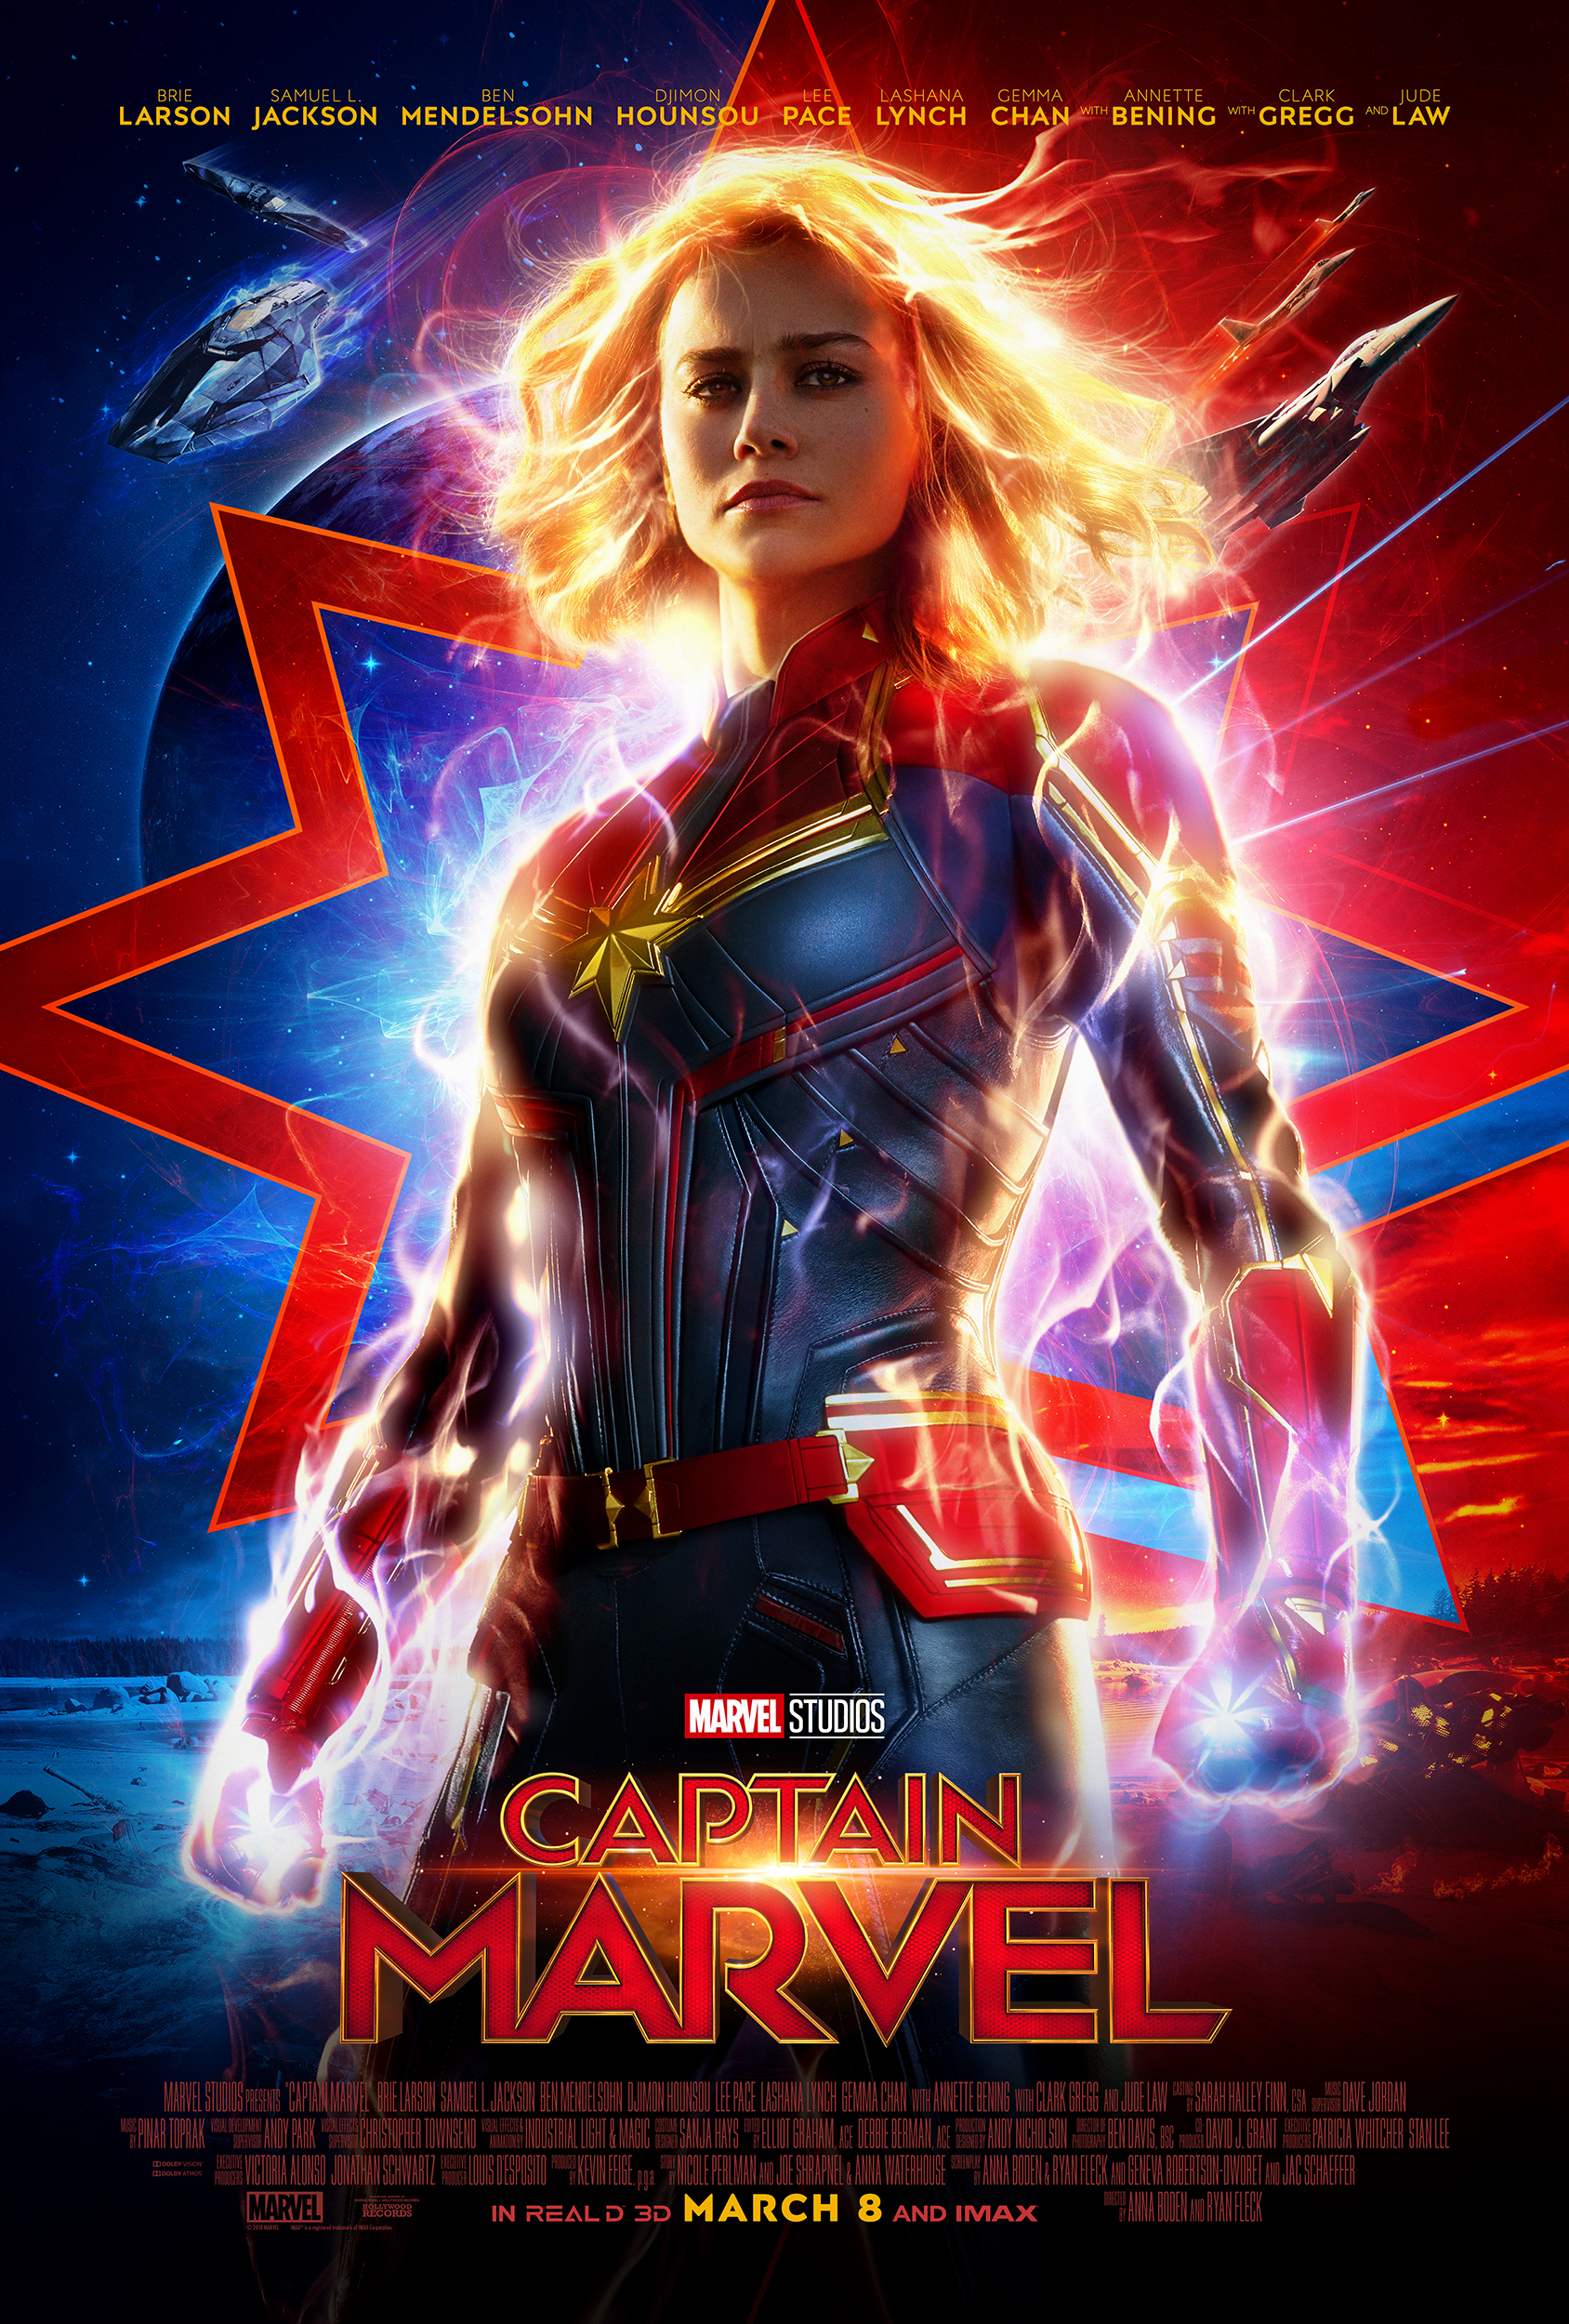 Captain Marvel is the first Disney movies coming out in 2019!